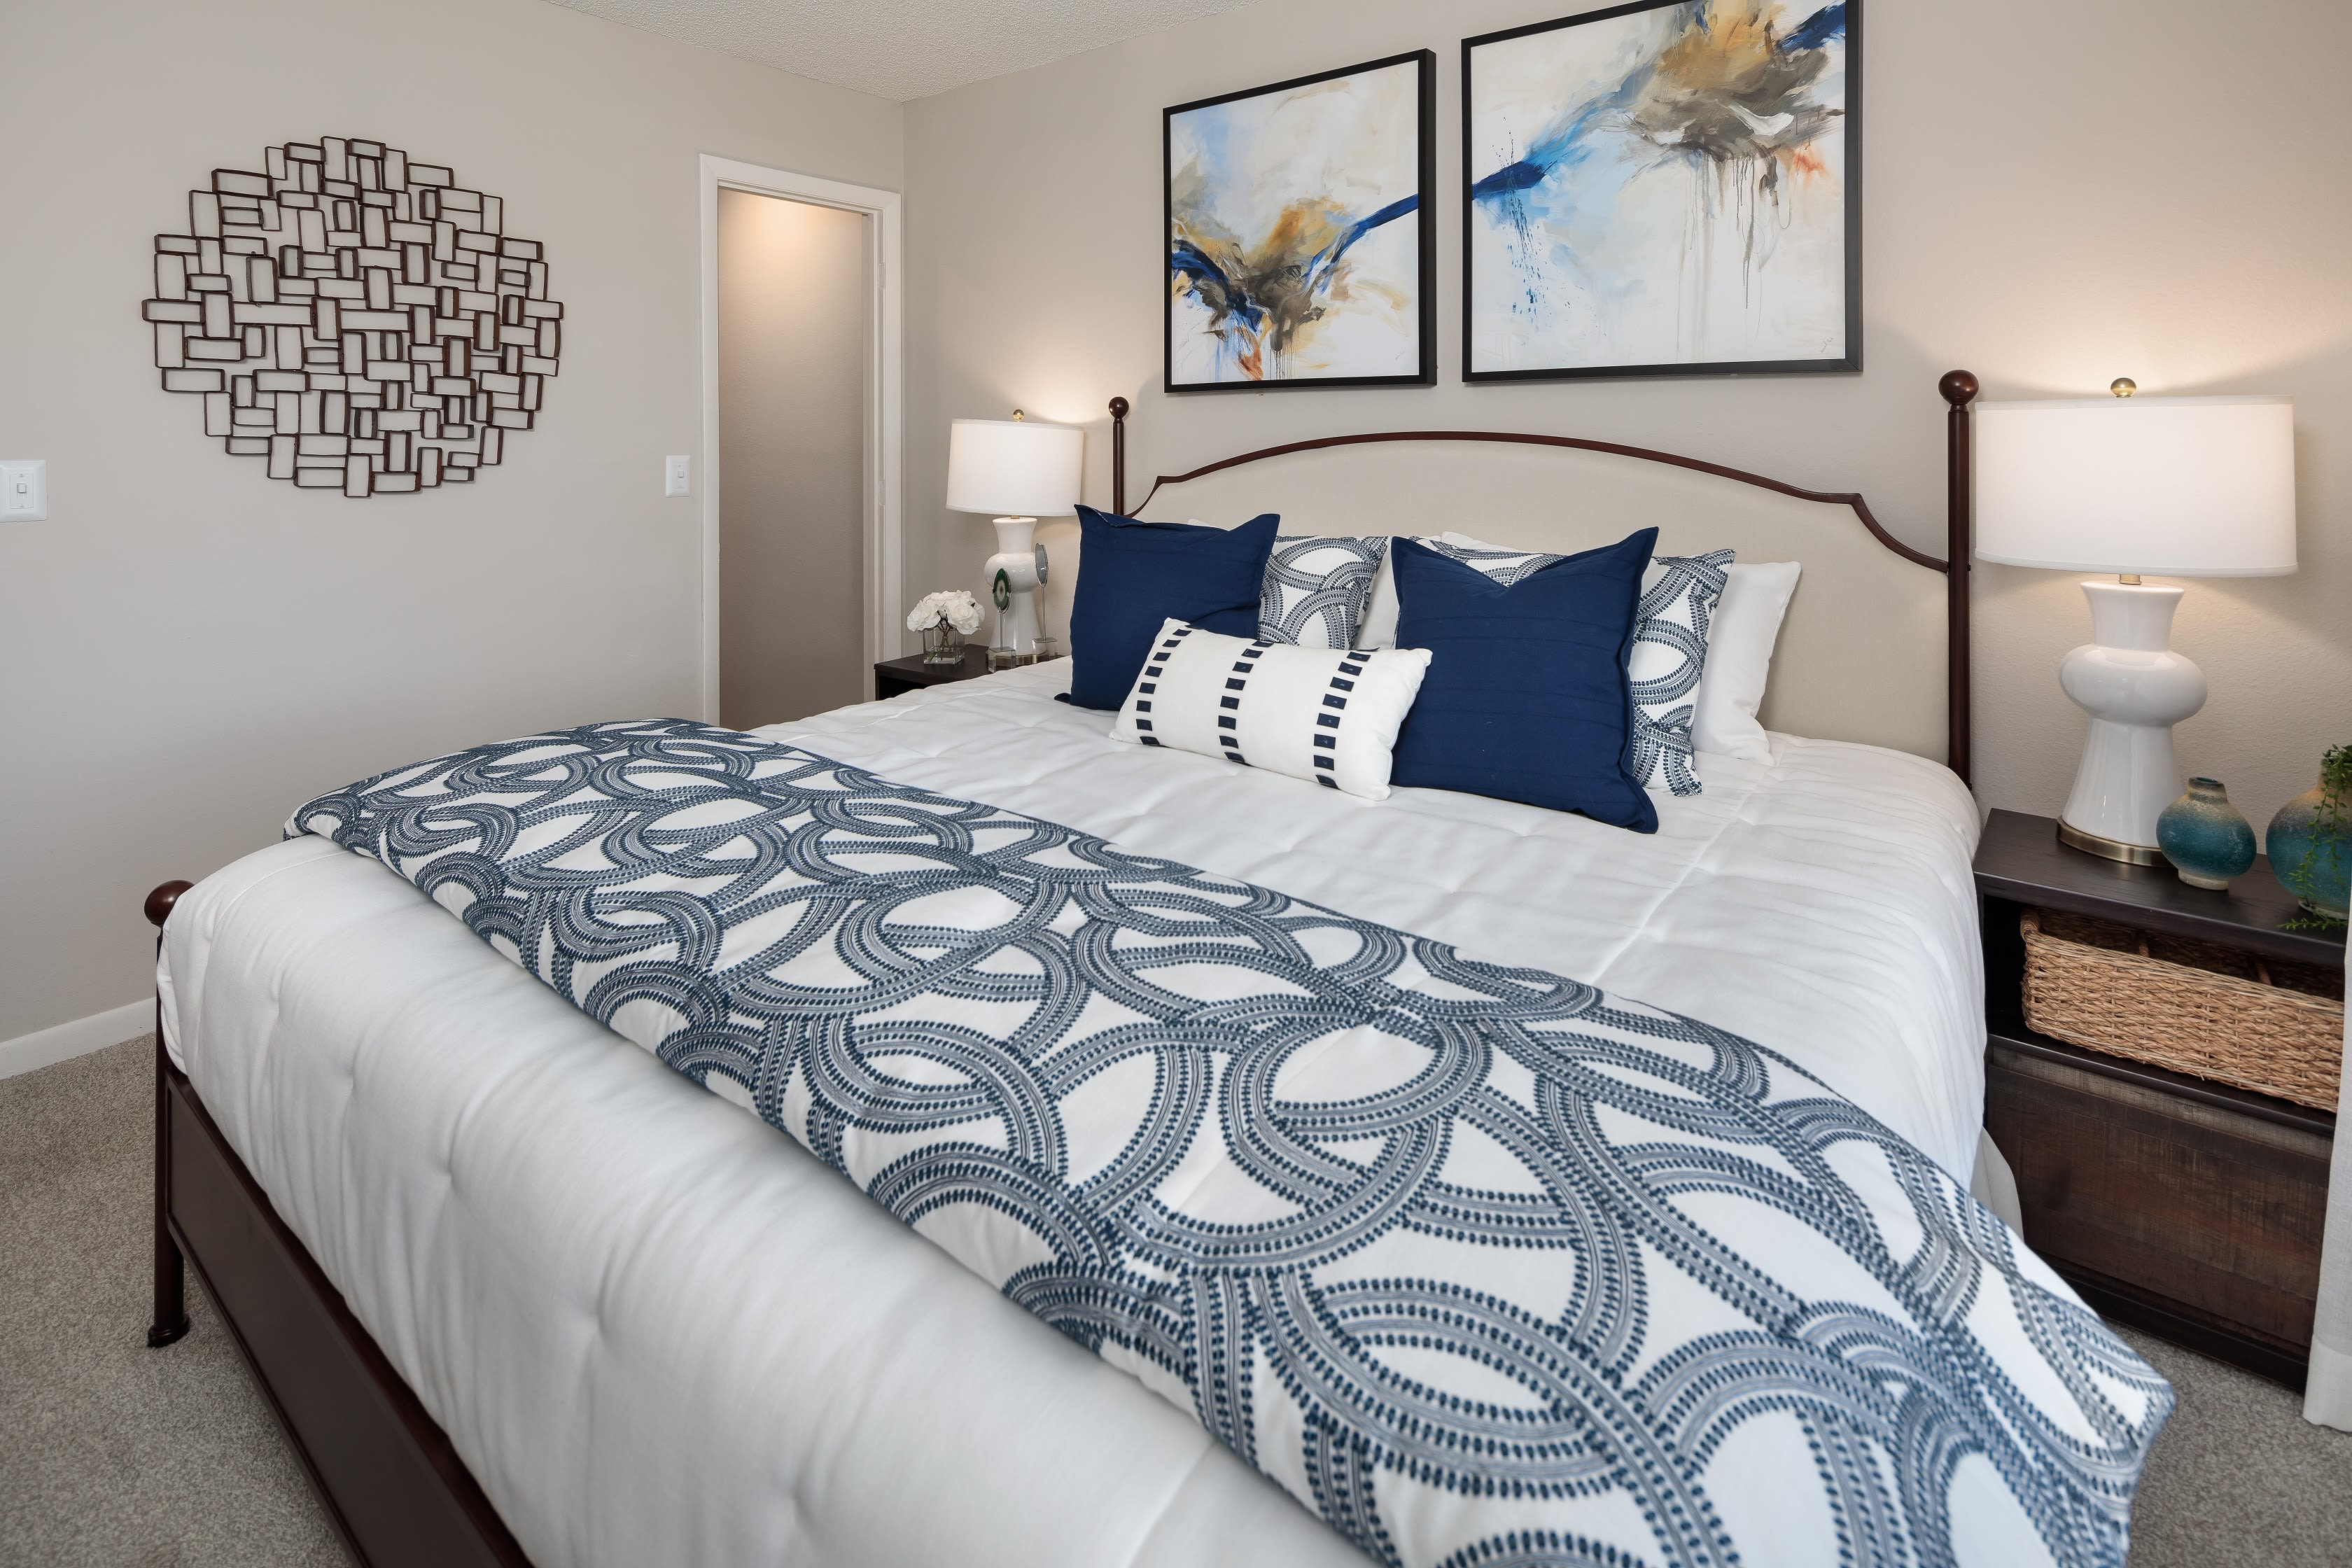 An apartment bedroom at Onyx Winter Park in Casselberry, FL